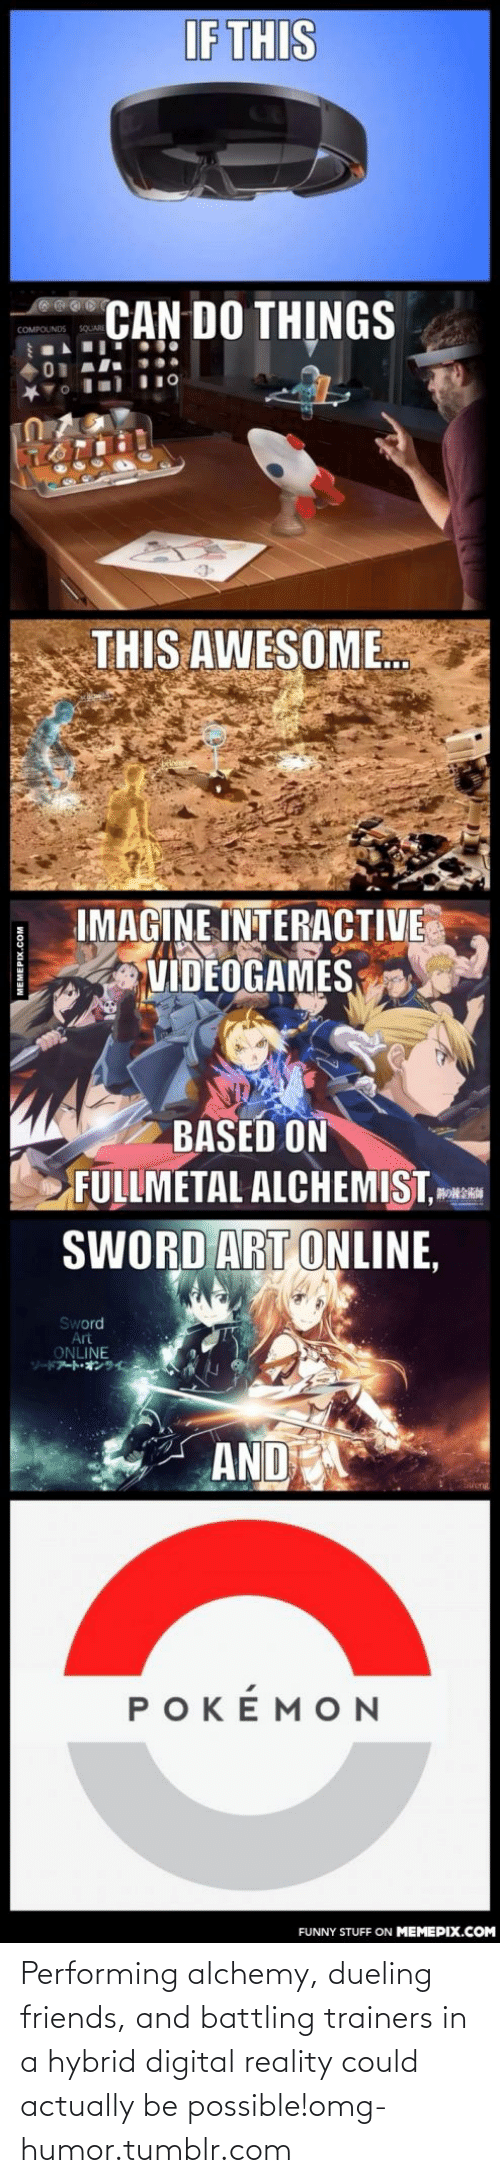 Art Online: IF THIS  CAN DO THỊNGS  COMPOUNDS  THIS AWESOME.  IMAGINE INTERACTIVE  VIDEOGAMES  BASED ON  FULLMETAL ALCHEMIST,  SWORD ART ONLINE,  Sword  Art  ONLINE  AND  Sueng  POKÉMON  FUNNY STUFF ON MEMEPIX.COM  MEMEPIX.COM Performing alchemy, dueling friends, and battling trainers in a hybrid digital reality could actually be possible!omg-humor.tumblr.com